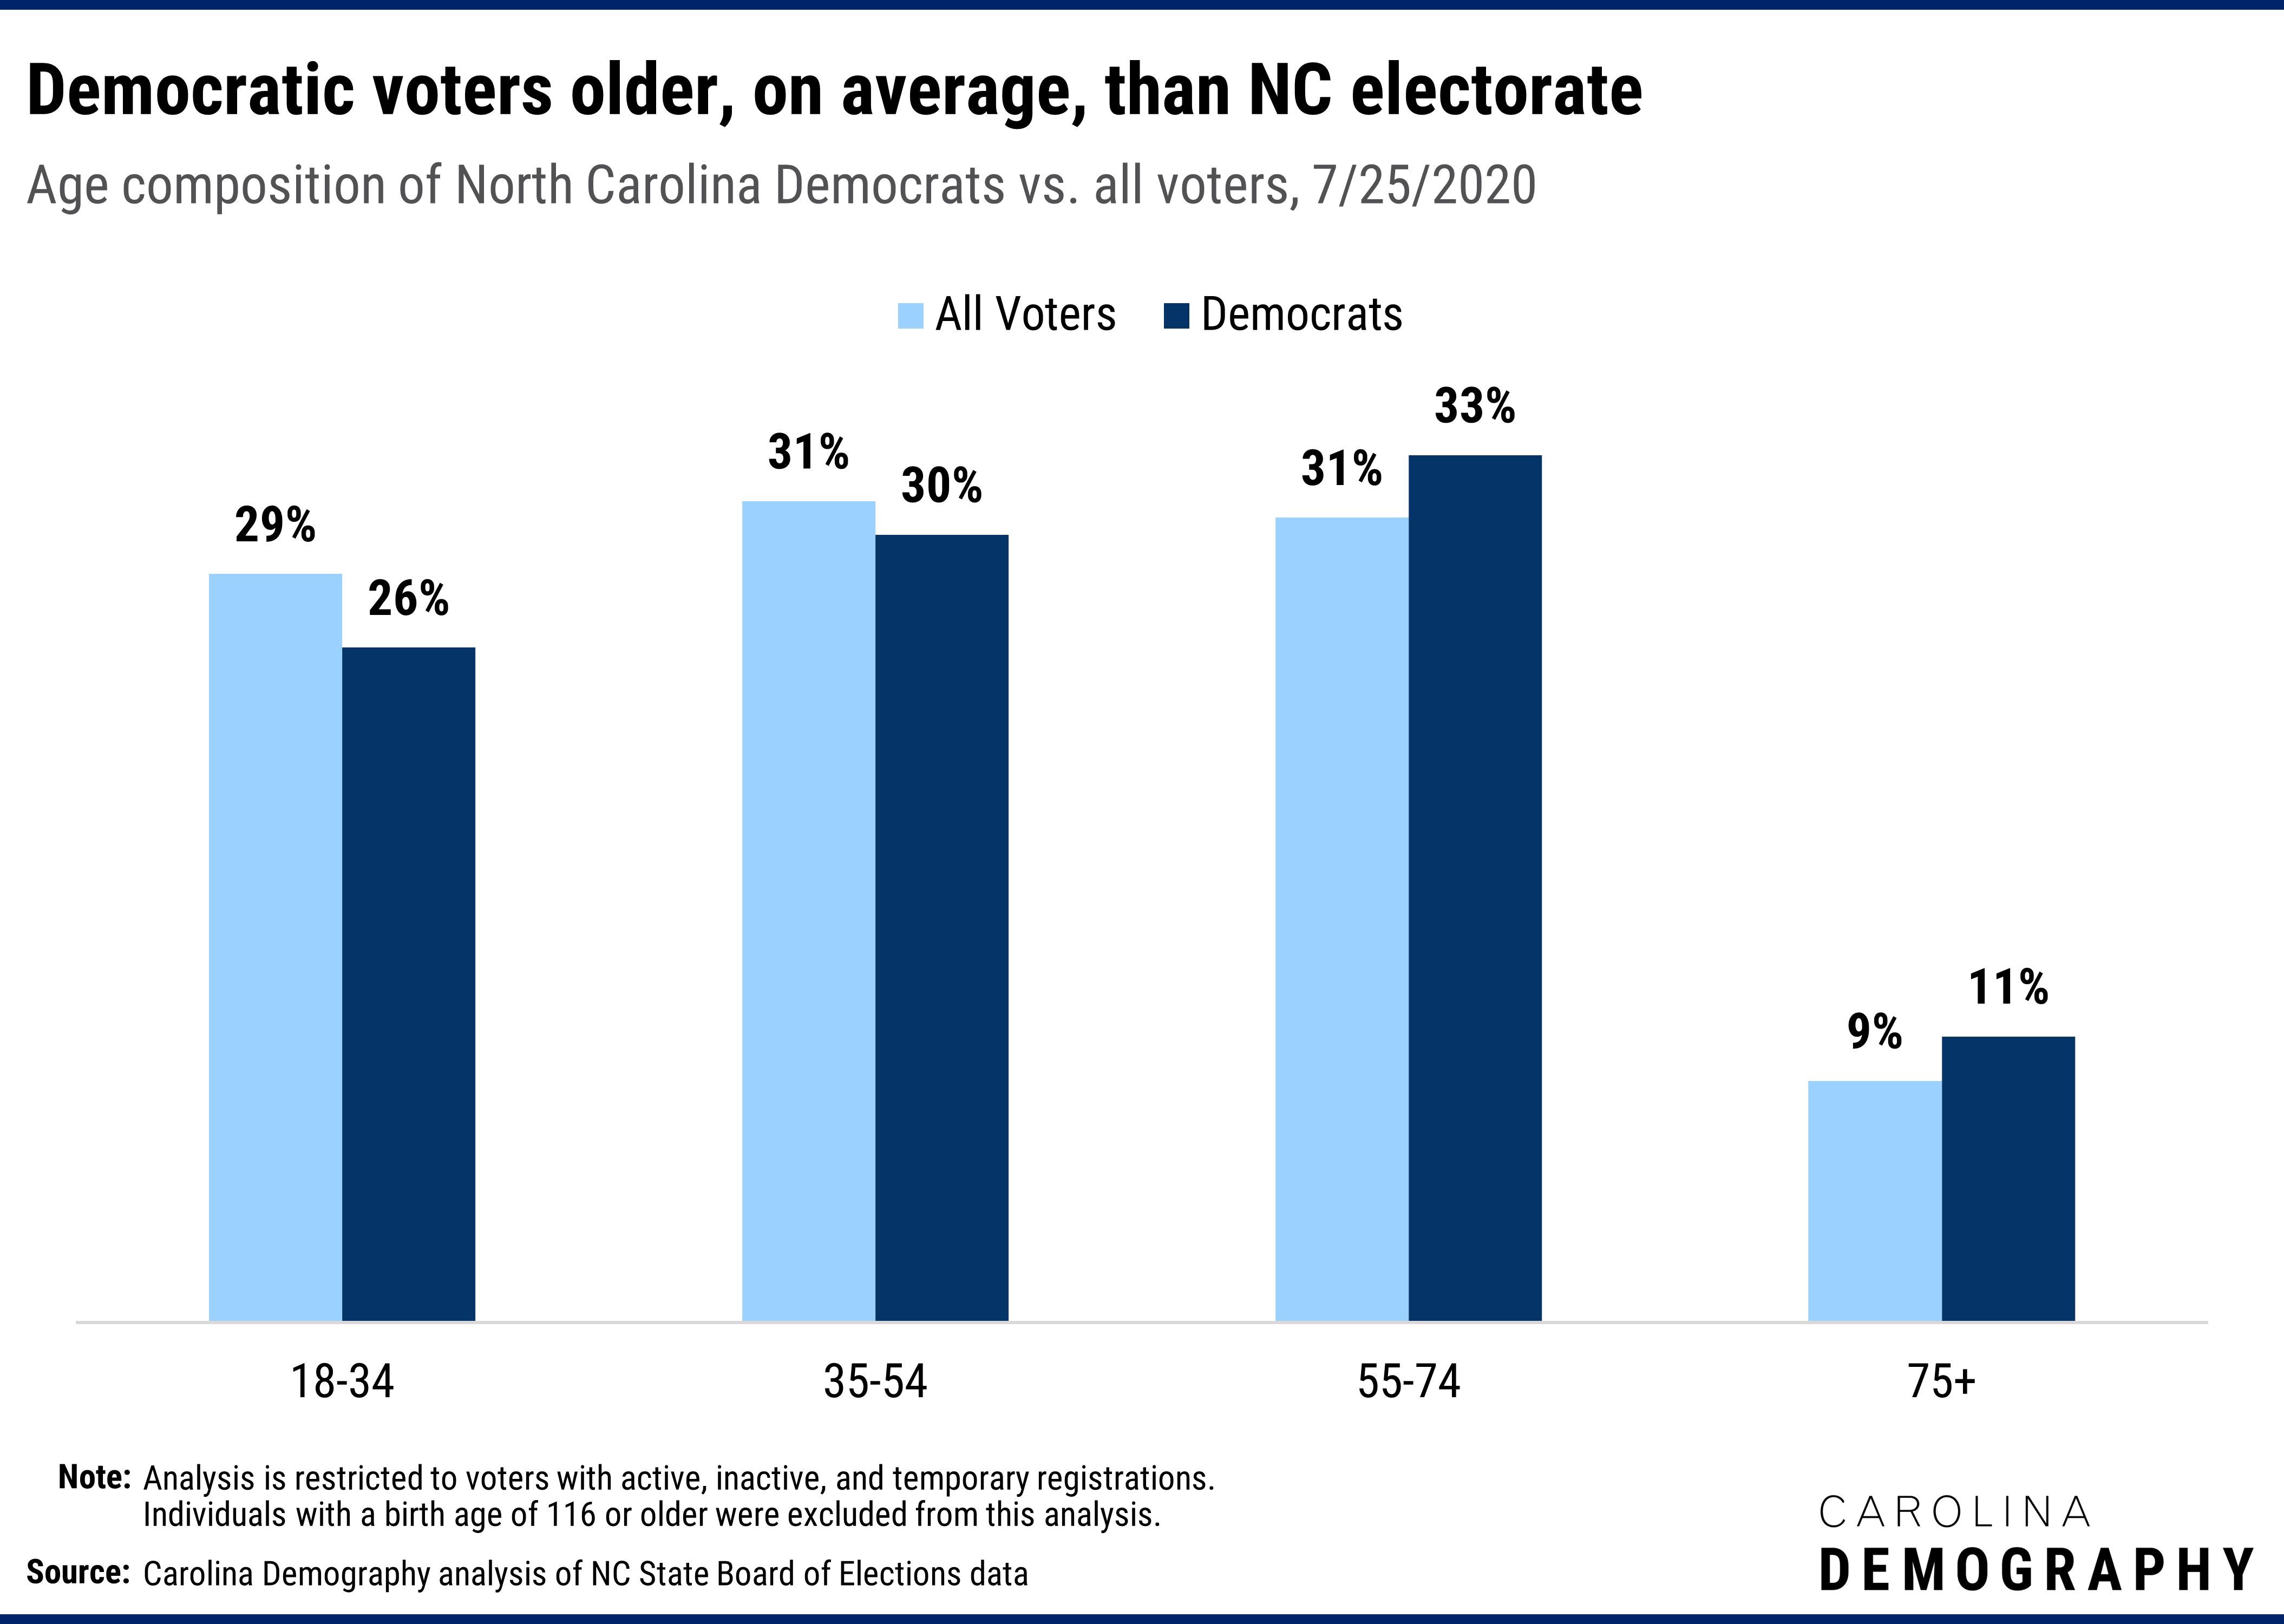 "Democratic voters older, on average, than NC electorate Age composition of North Carolina Democrats vs. all voters, 7/25/2020. Older voters are the most likely to register as a Democrat, partly reflecting the legacy of the ""Solid South."" Just over 43% of voters ages 75 and older are registered Democrats compared to 33% of 18-34 year-olds, 35% of 35-54 year-olds, and 39% of voters ages 55-74. As a result, older adults comprise a larger share of the state's Democratic voters than the overall electorate."